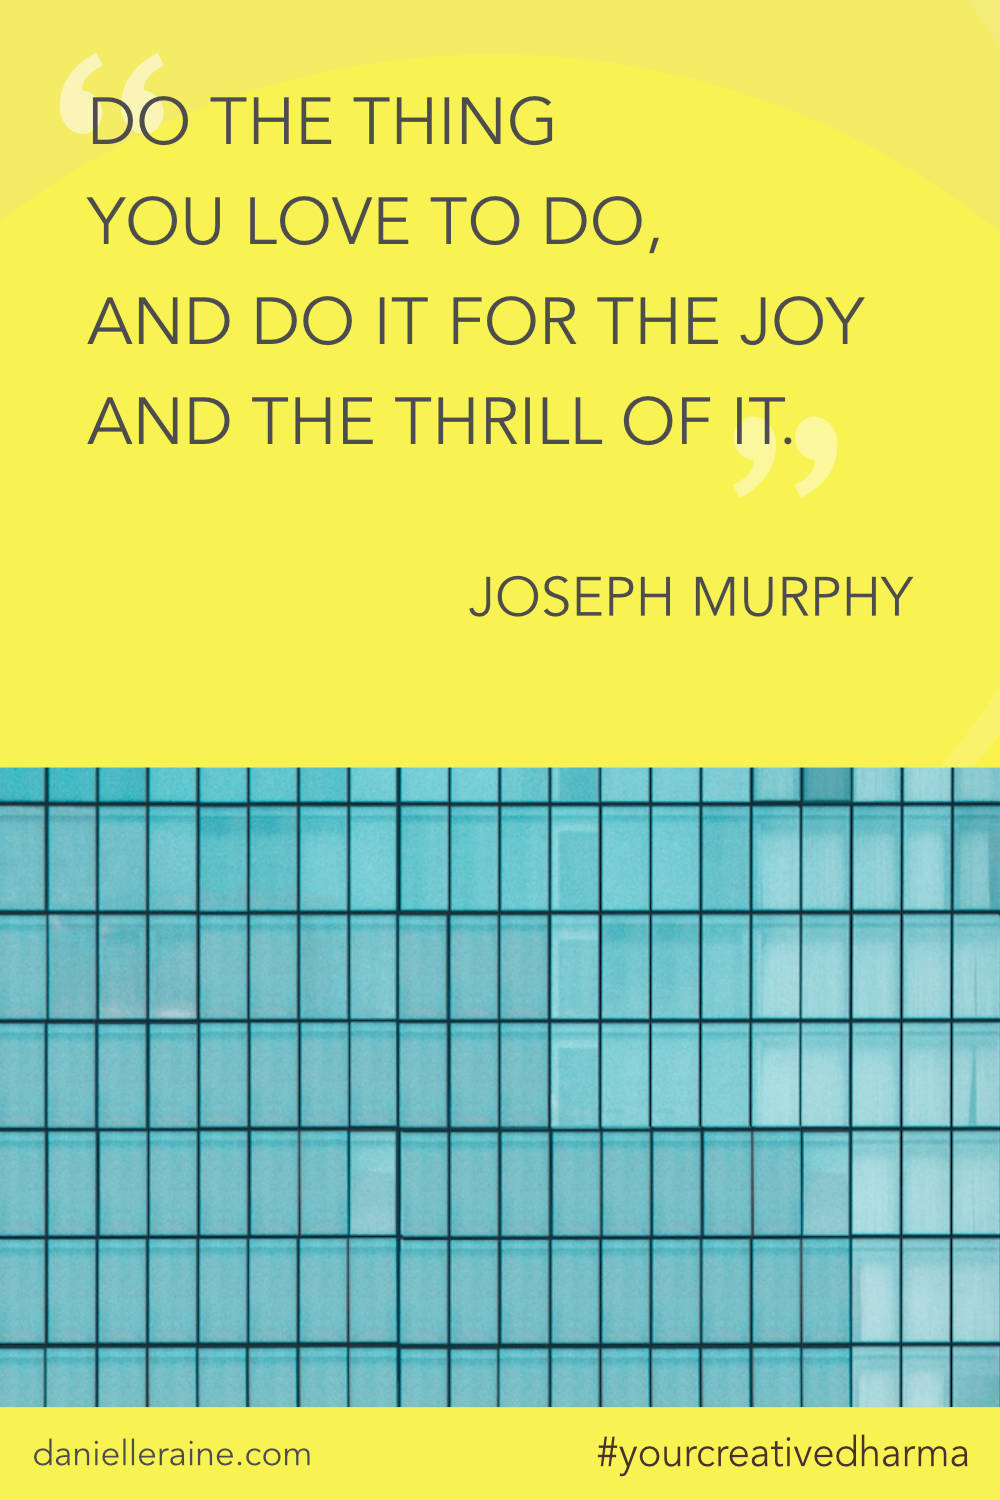 Your Creative Dharma quote joseph murphy for the joy and the thrill of it